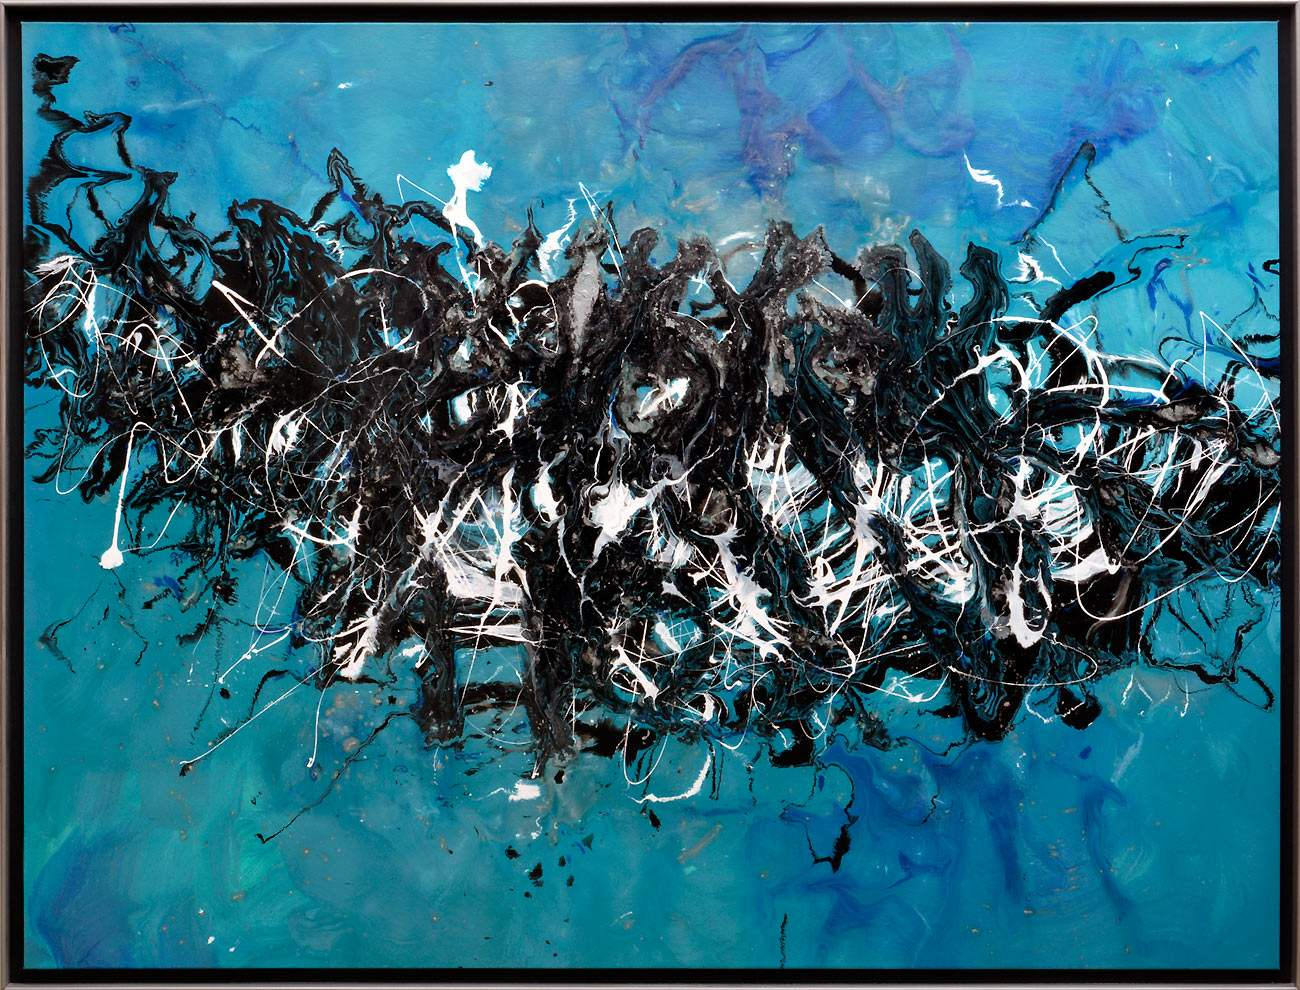 large blue artwork in frame